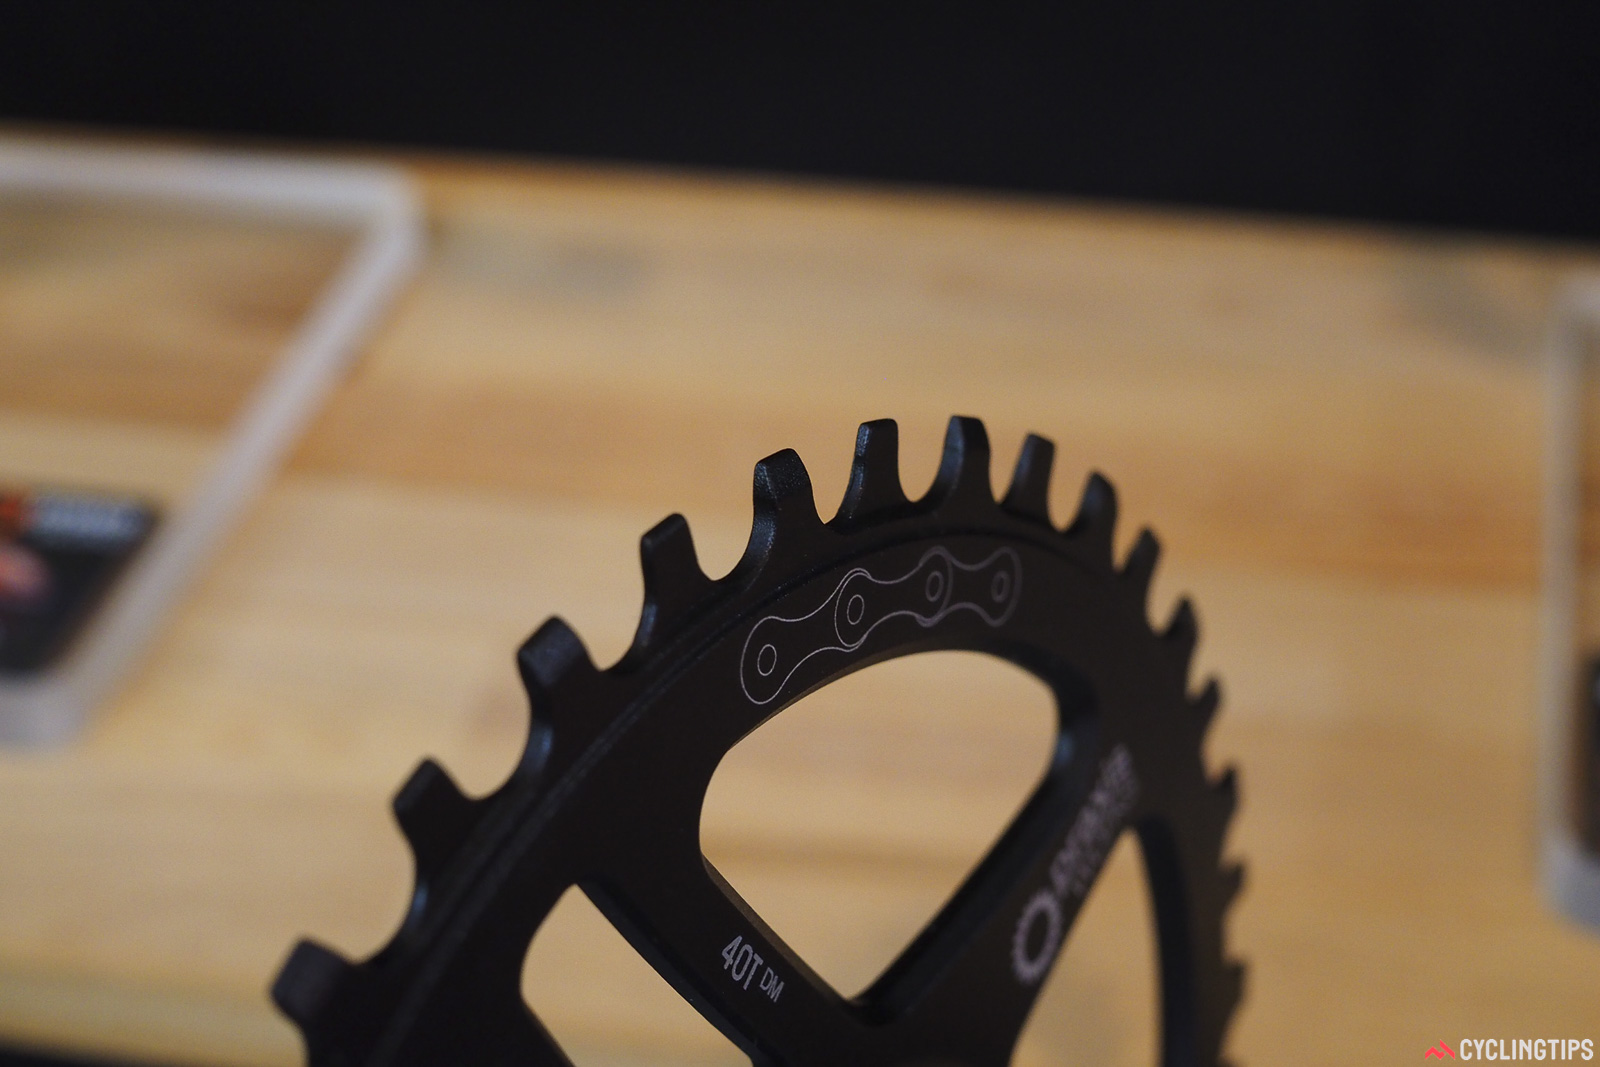 Praxis' 1x-specific chainrings use a new Wave tooth pattern that supposedly provides better retention and improved durability than conventional narrow-wide patterns. Photo: James Huang.